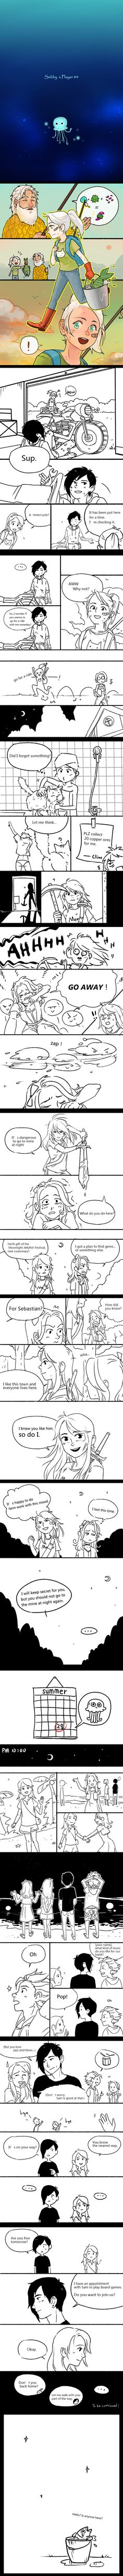 Sebby x Player [4] || A little hard to understand, but you should get the gist of it (;^_^)